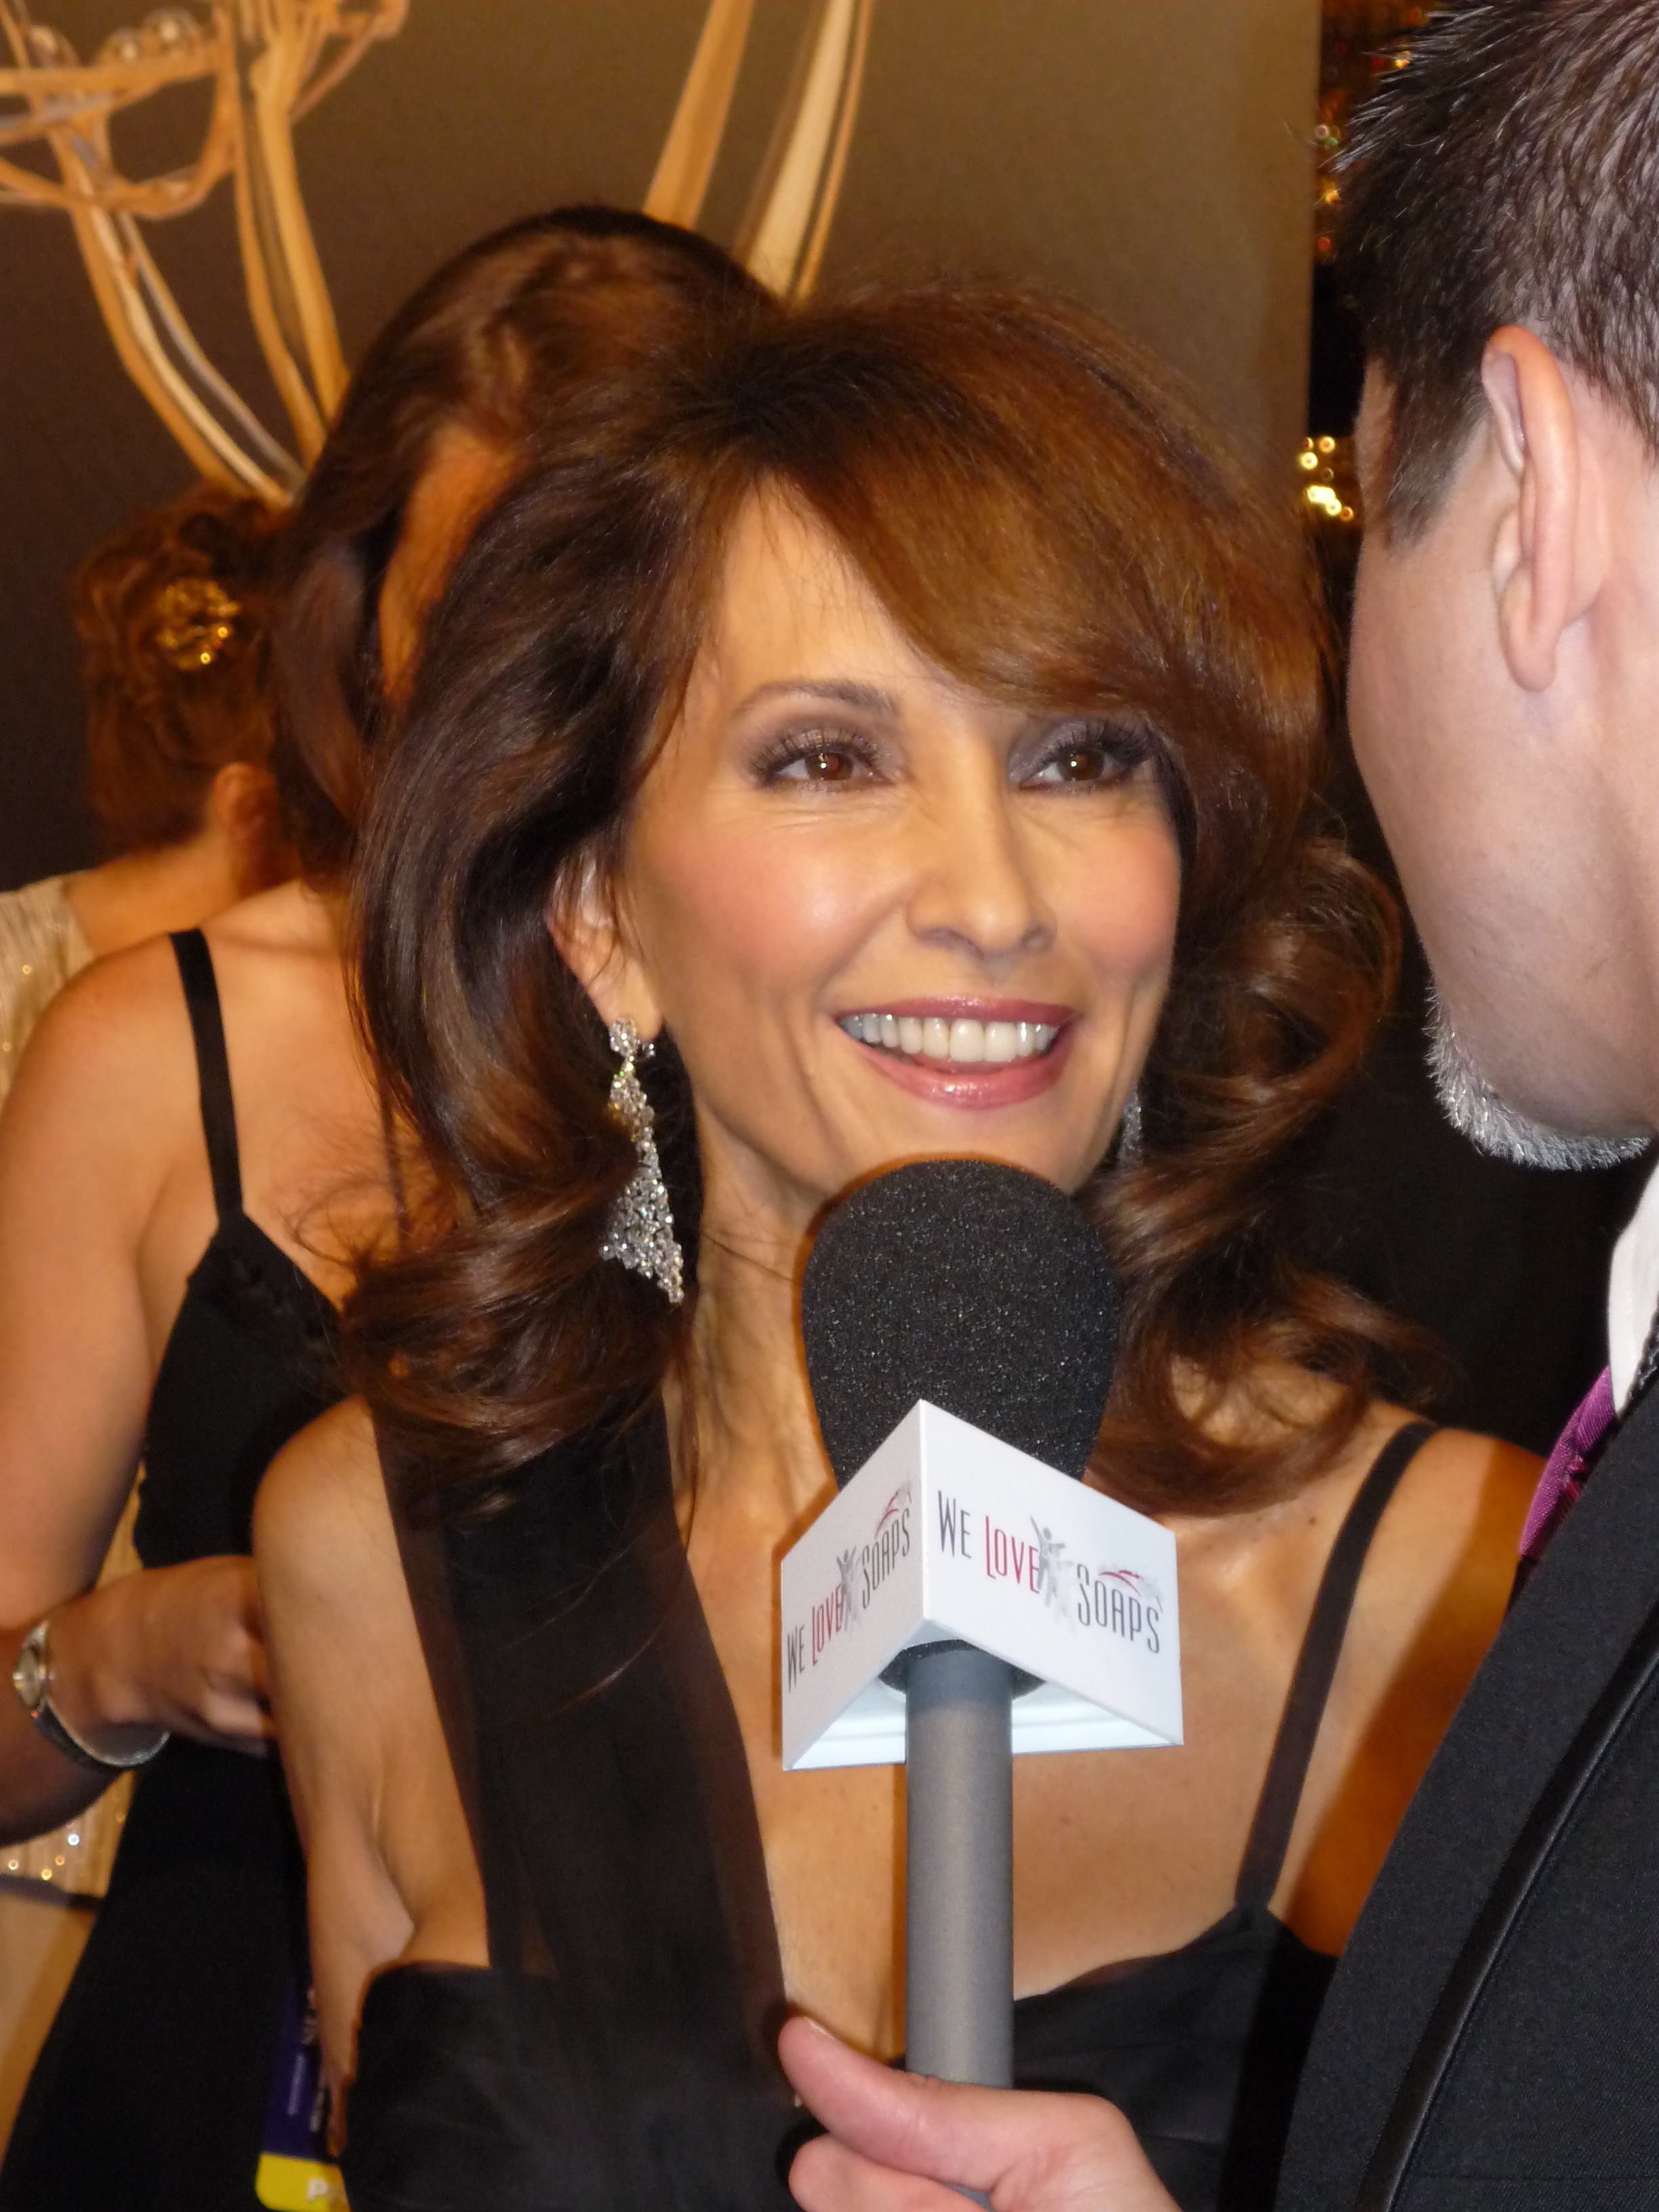 The 71-year old daughter of father Victor Lucci and mother Jeanette Granquist Susan Lucci in 2018 photo. Susan Lucci earned a  million dollar salary - leaving the net worth at 45 million in 2018